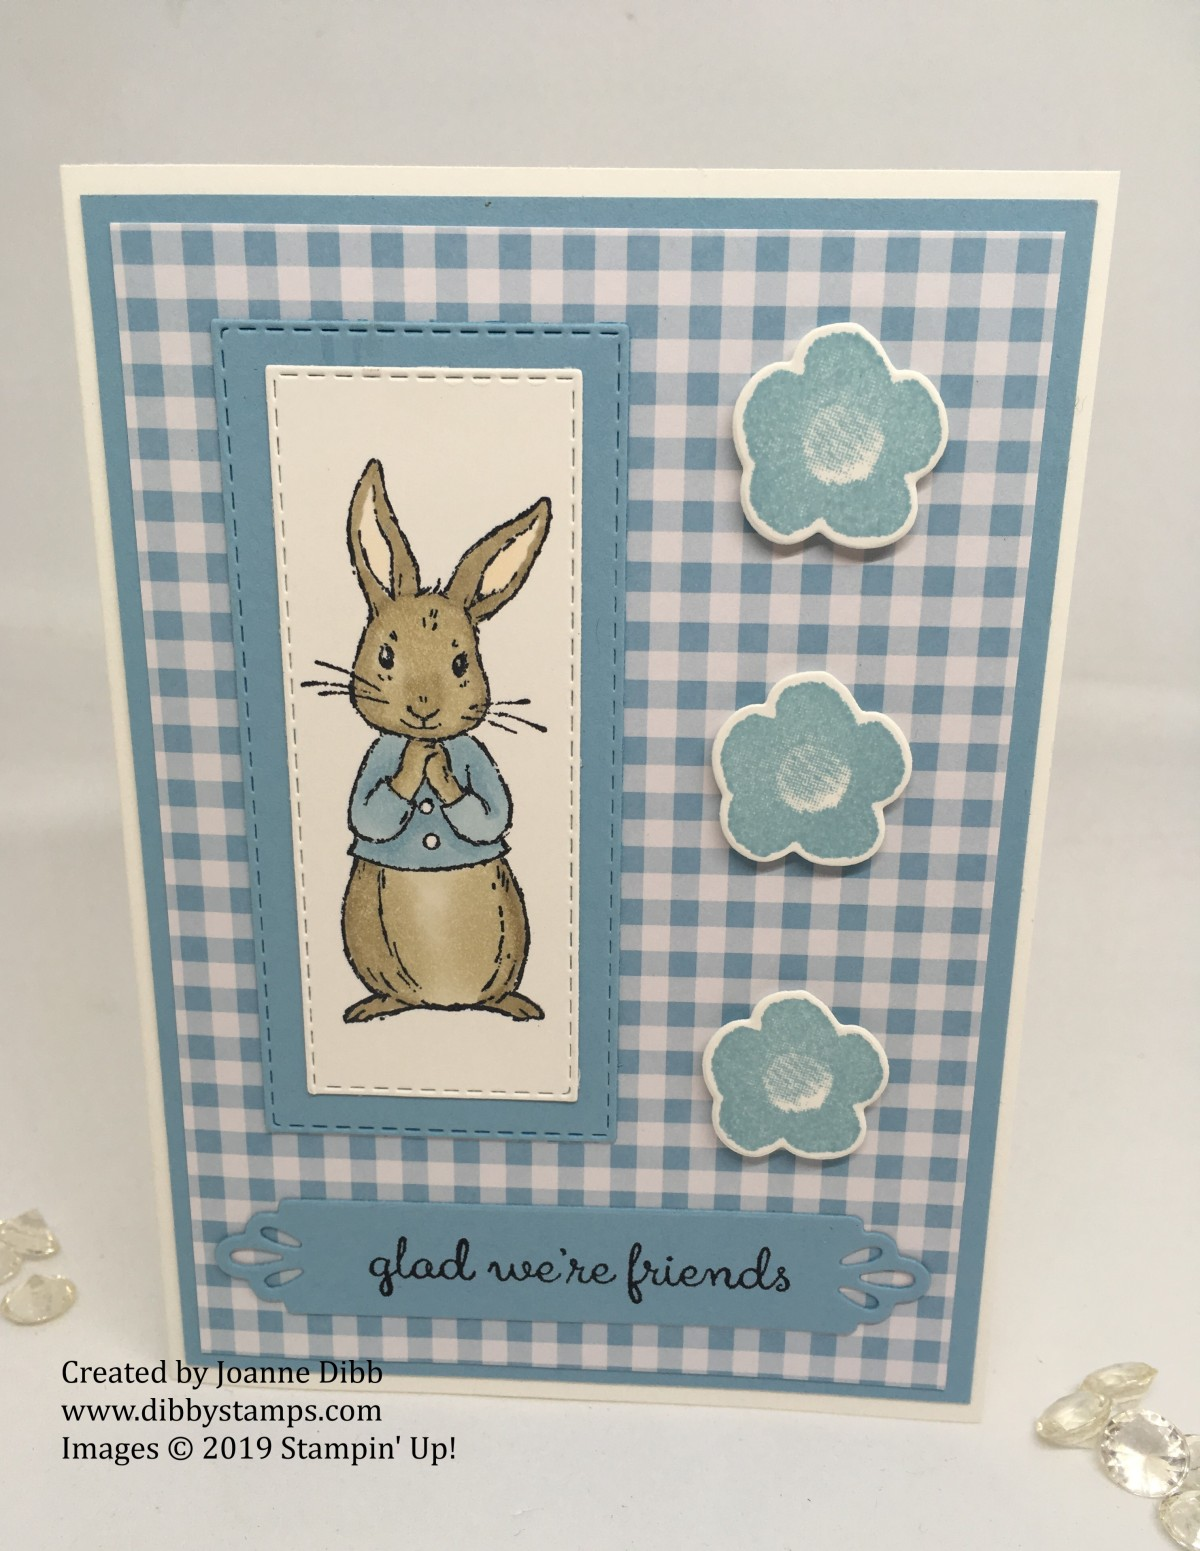 """""""Peter Rabbit"""" Inspired card with FableFriends"""